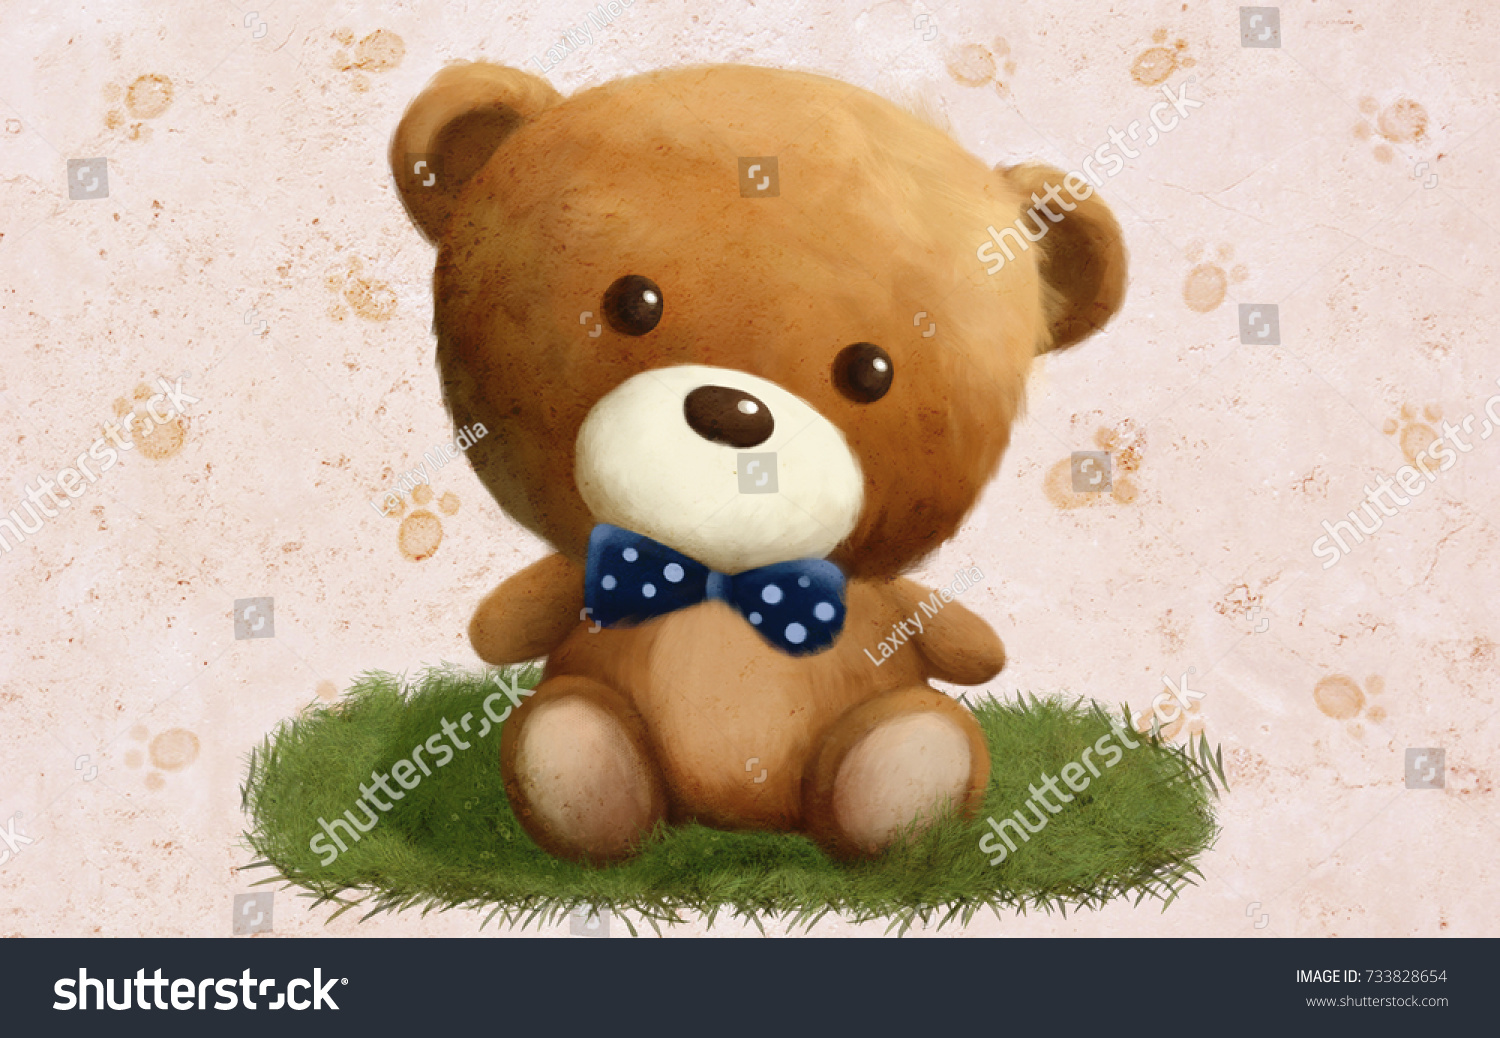 Drawn fluffy teddy bear on green stock illustration 733828654 drawn fluffy teddy bear on green circle grass perfect for greeting cards m4hsunfo